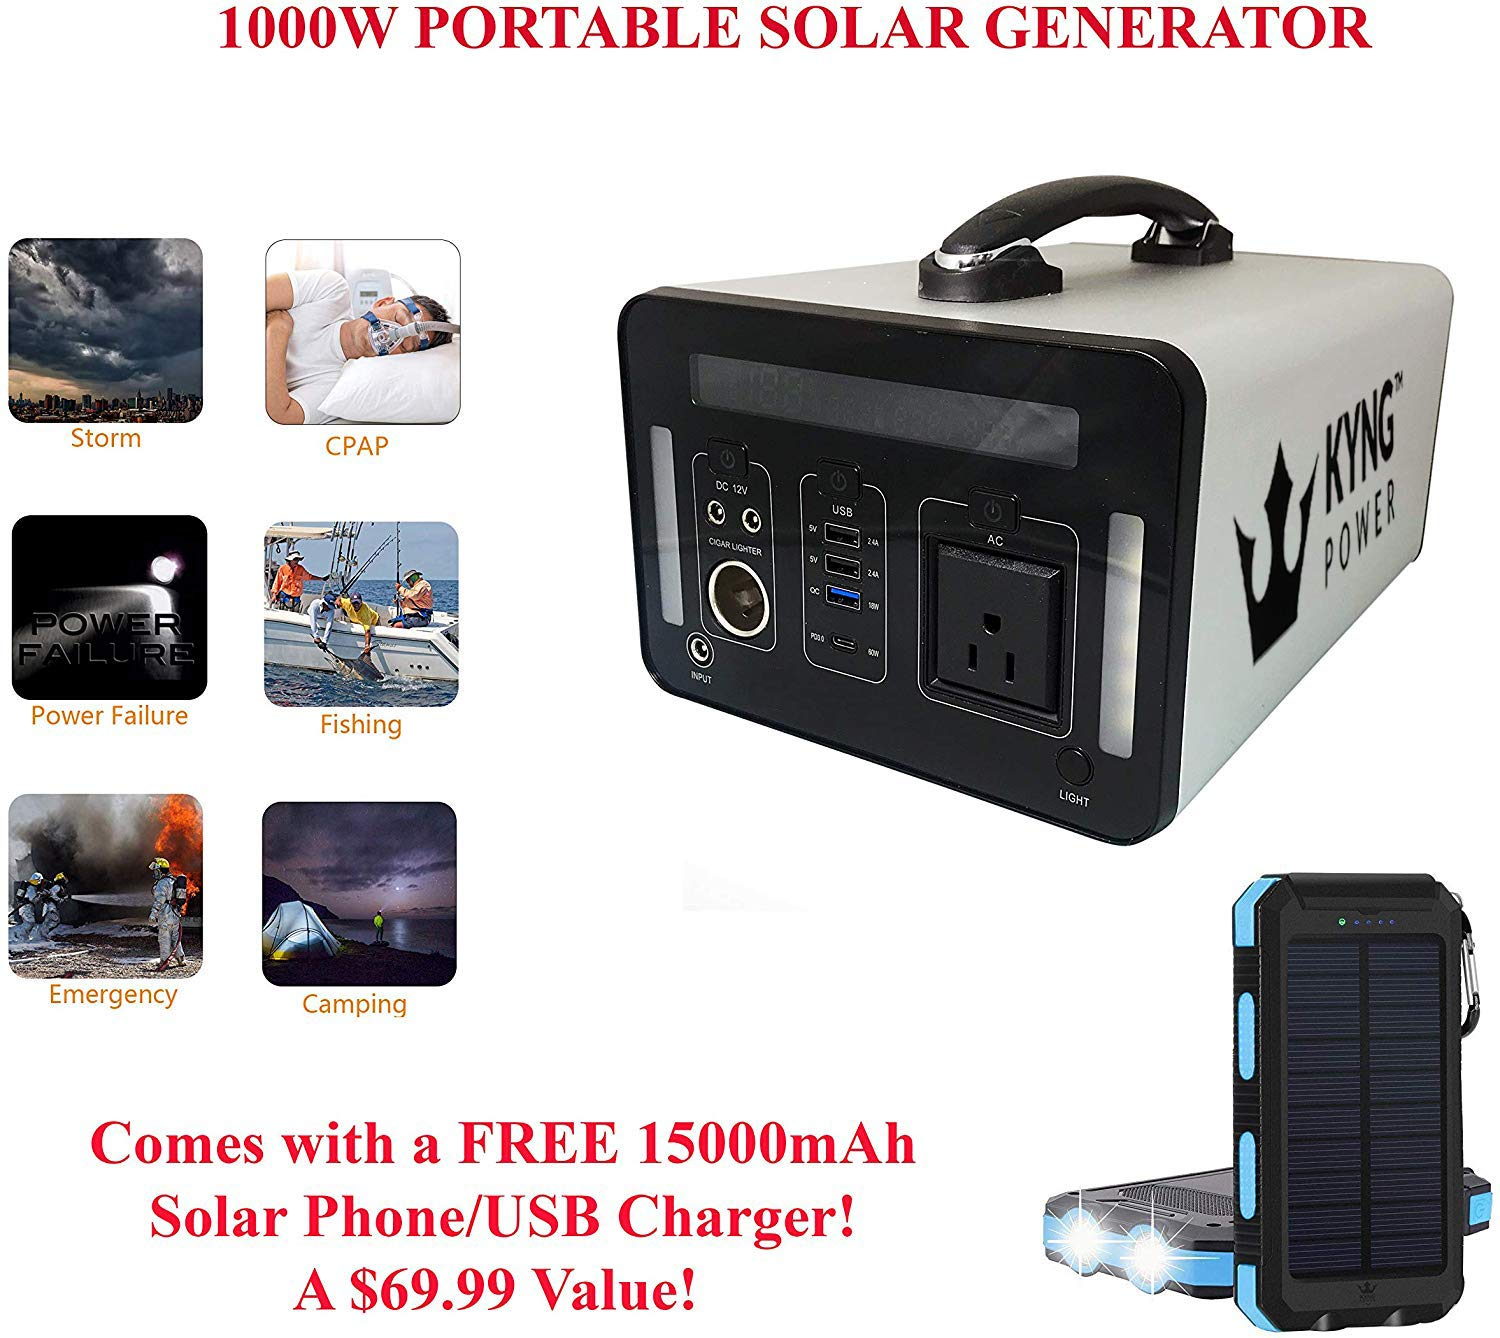 Kyng Power Solar Generator Portable Power Station 1000Wh 1500w Peak Emergency Generator Lithium Rechargeable Battery Inverter Back Up Power Supply, CPAP, Outdoors, Camping, Emergency 3 USB, 2 DC, AC by Kyng Power